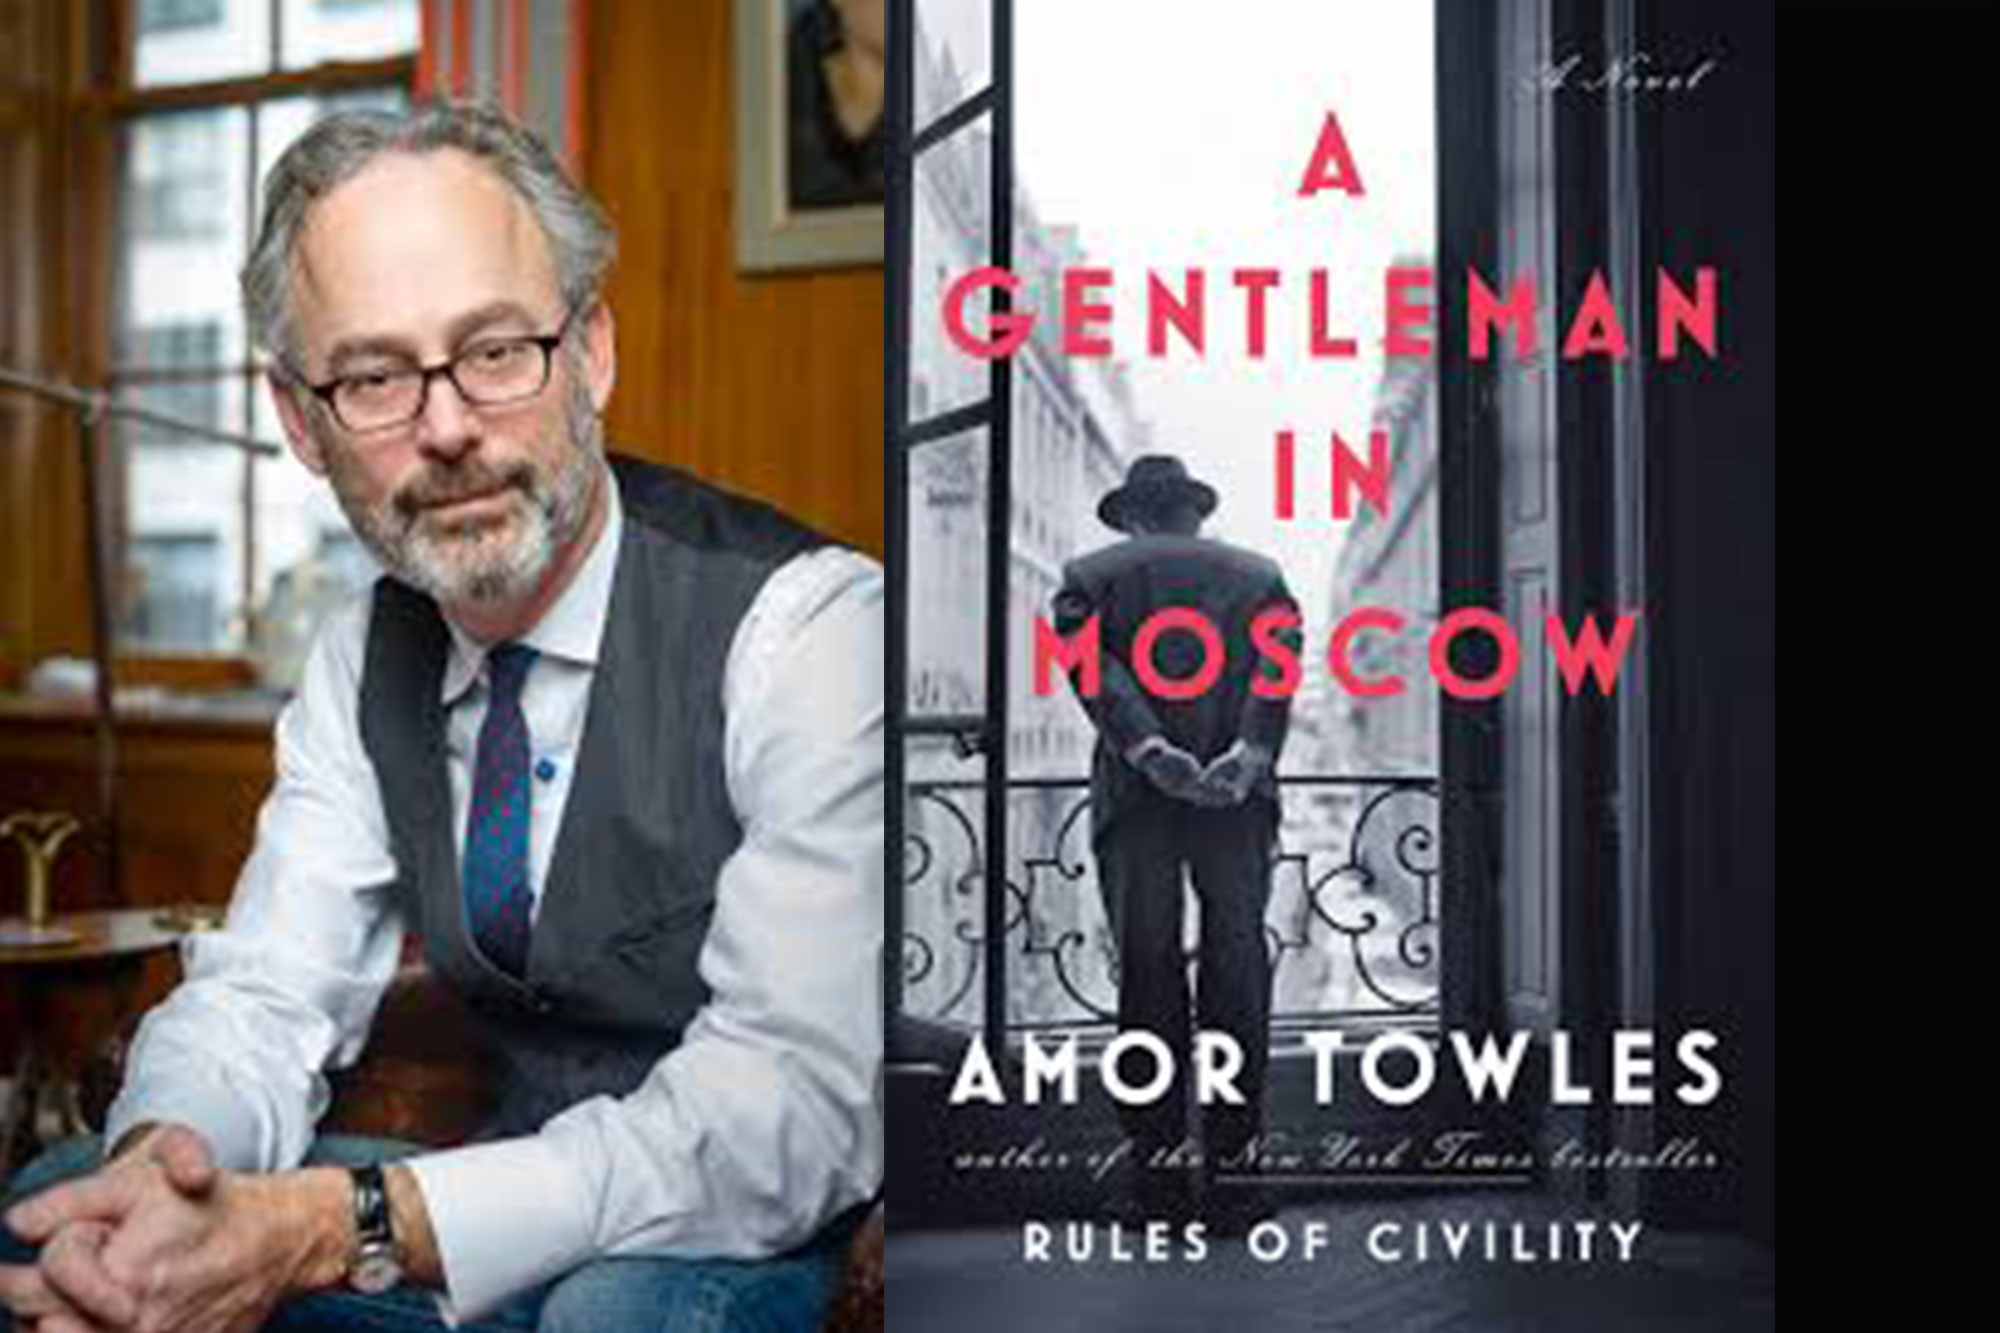 Cafe Society Book Discussion Group: A Gentleman in Moscow by Amor Towles